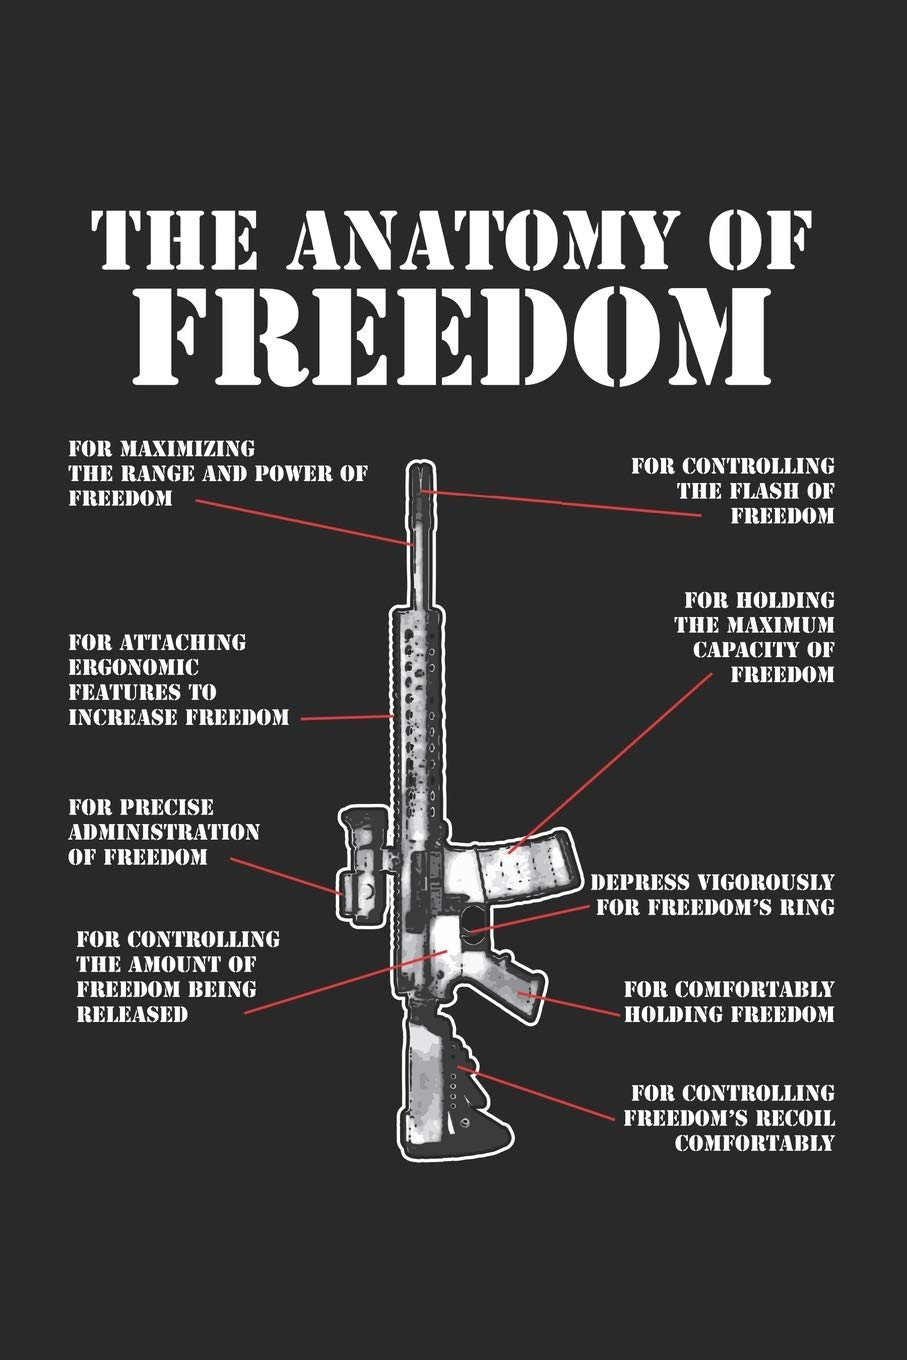 The Anatomy of Freedom: M4 AR15 Assault Rifle Gun ruled